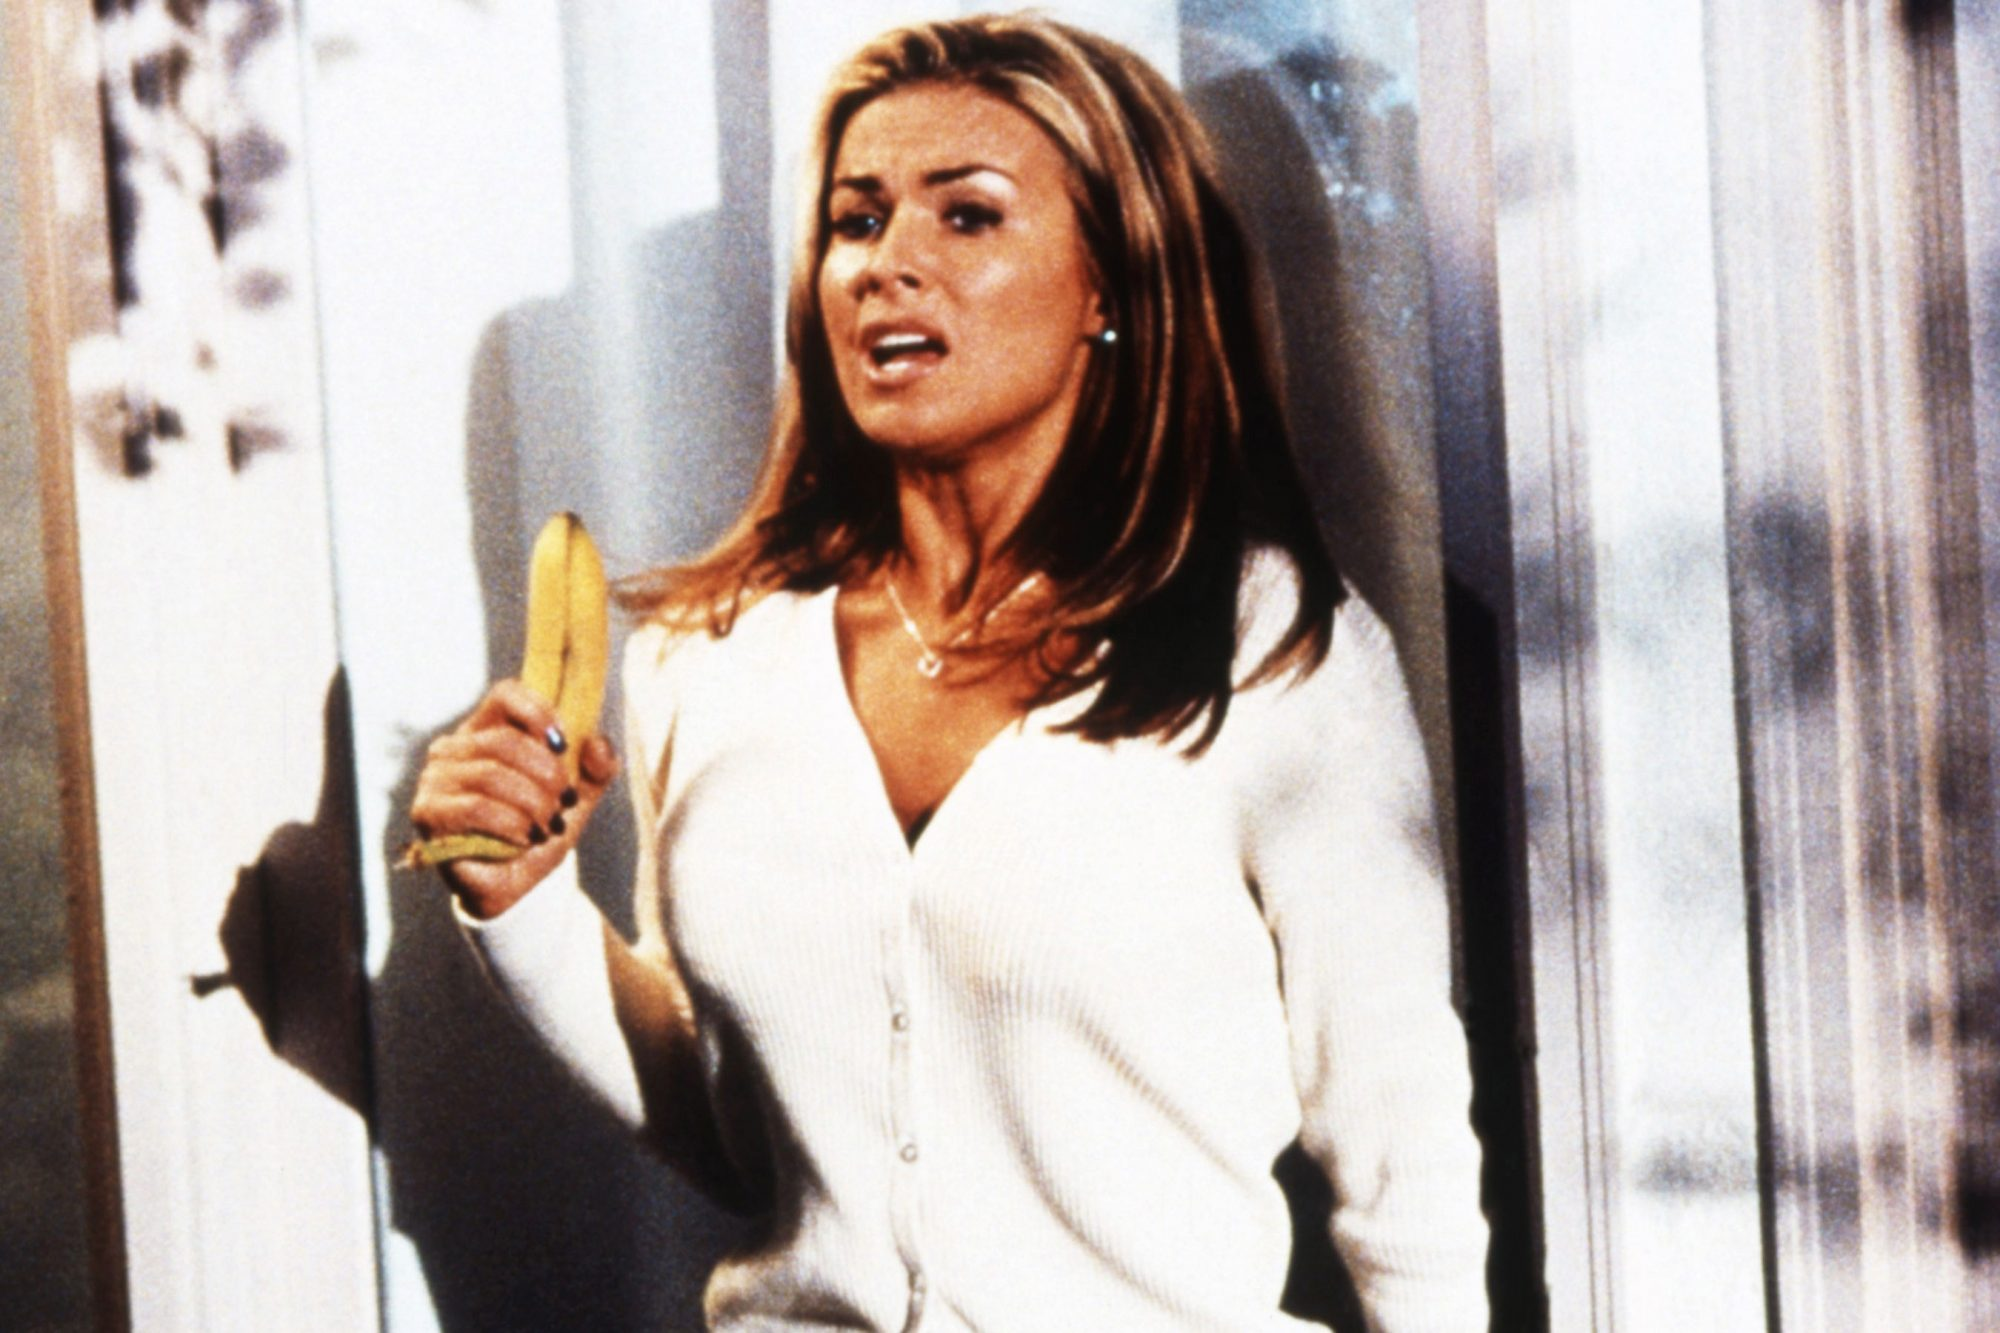 SCARY MOVIE, Carmen Electra, 2000, © Dimension Films/courtesy Everett Collection